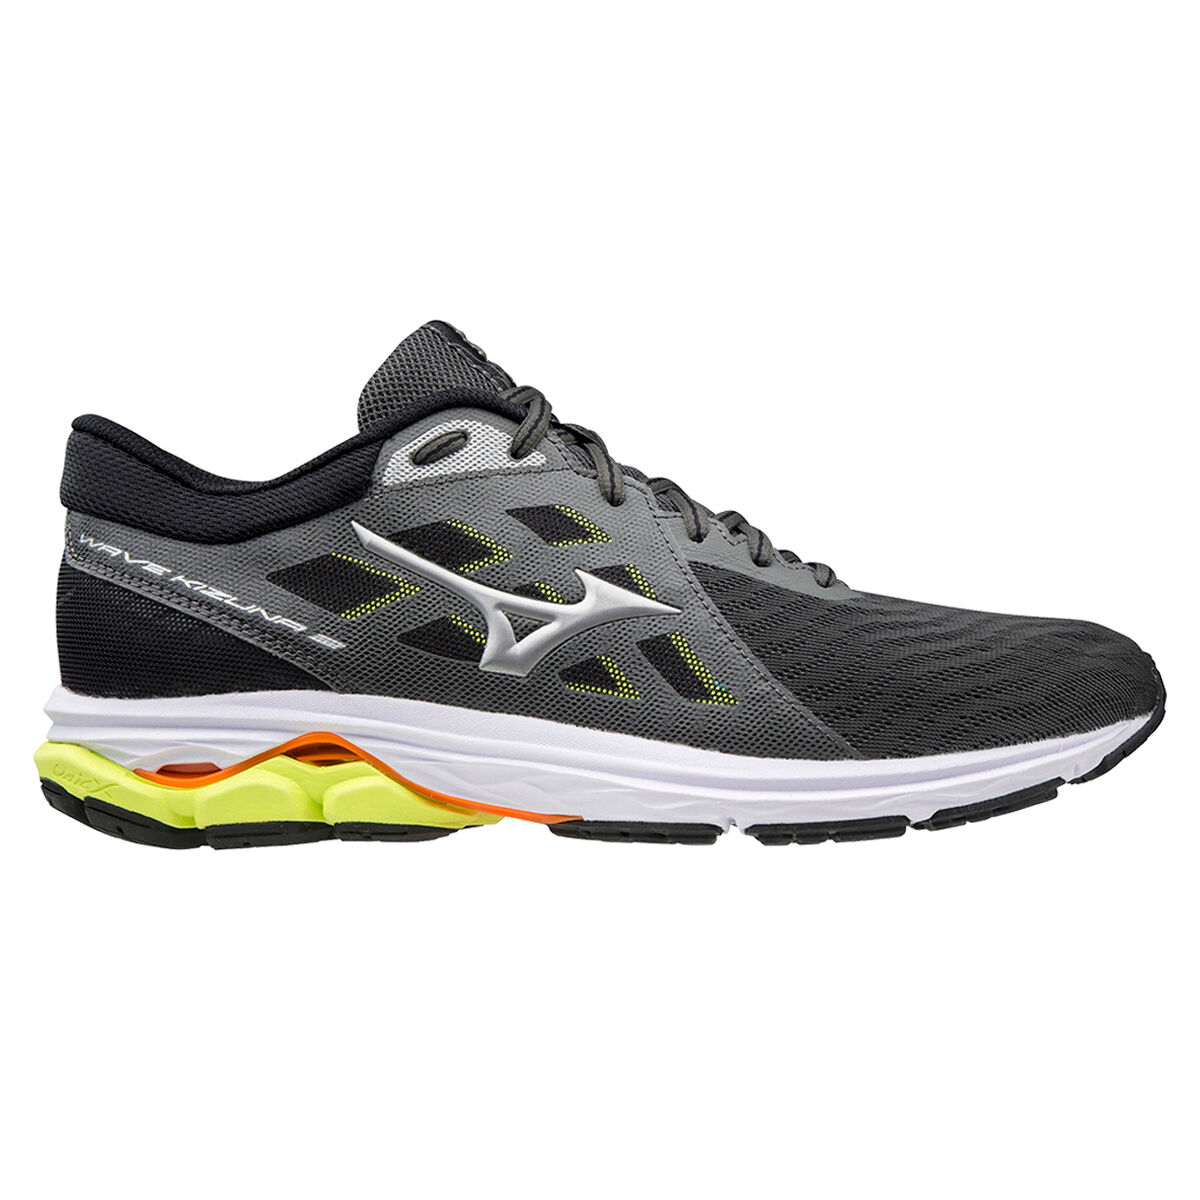 mizuno mens running shoes size 9 youth gold with zips